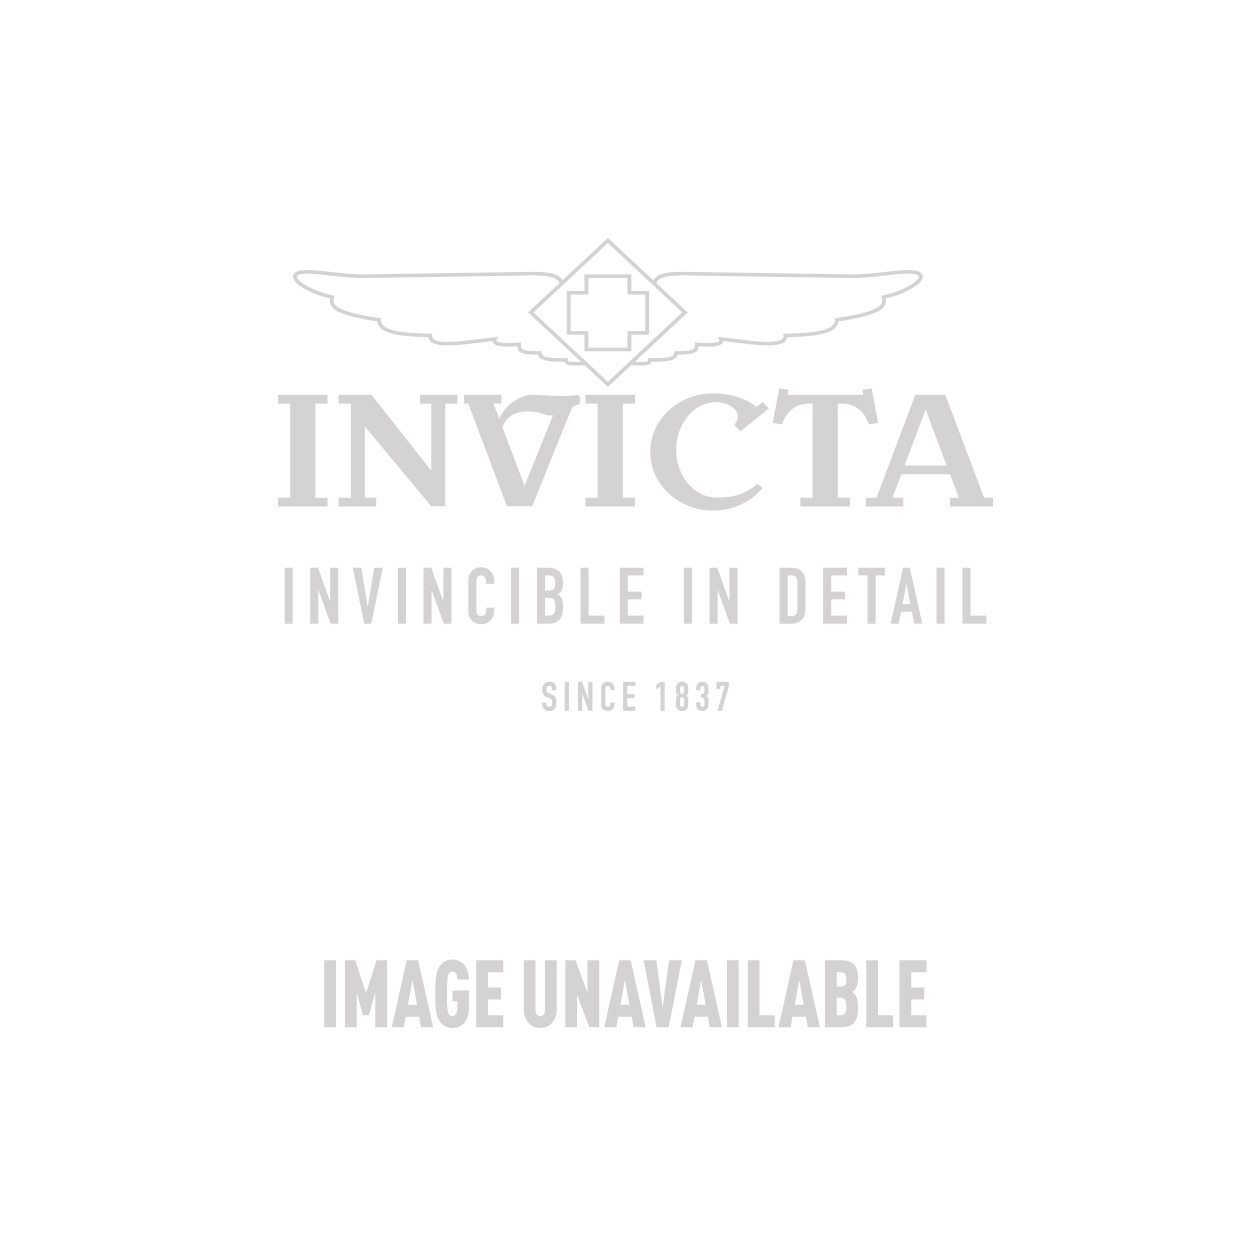 Invicta Aviator Quartz Watch - Rose Gold, Stainless Steel case Stainless Steel band - Model 17203